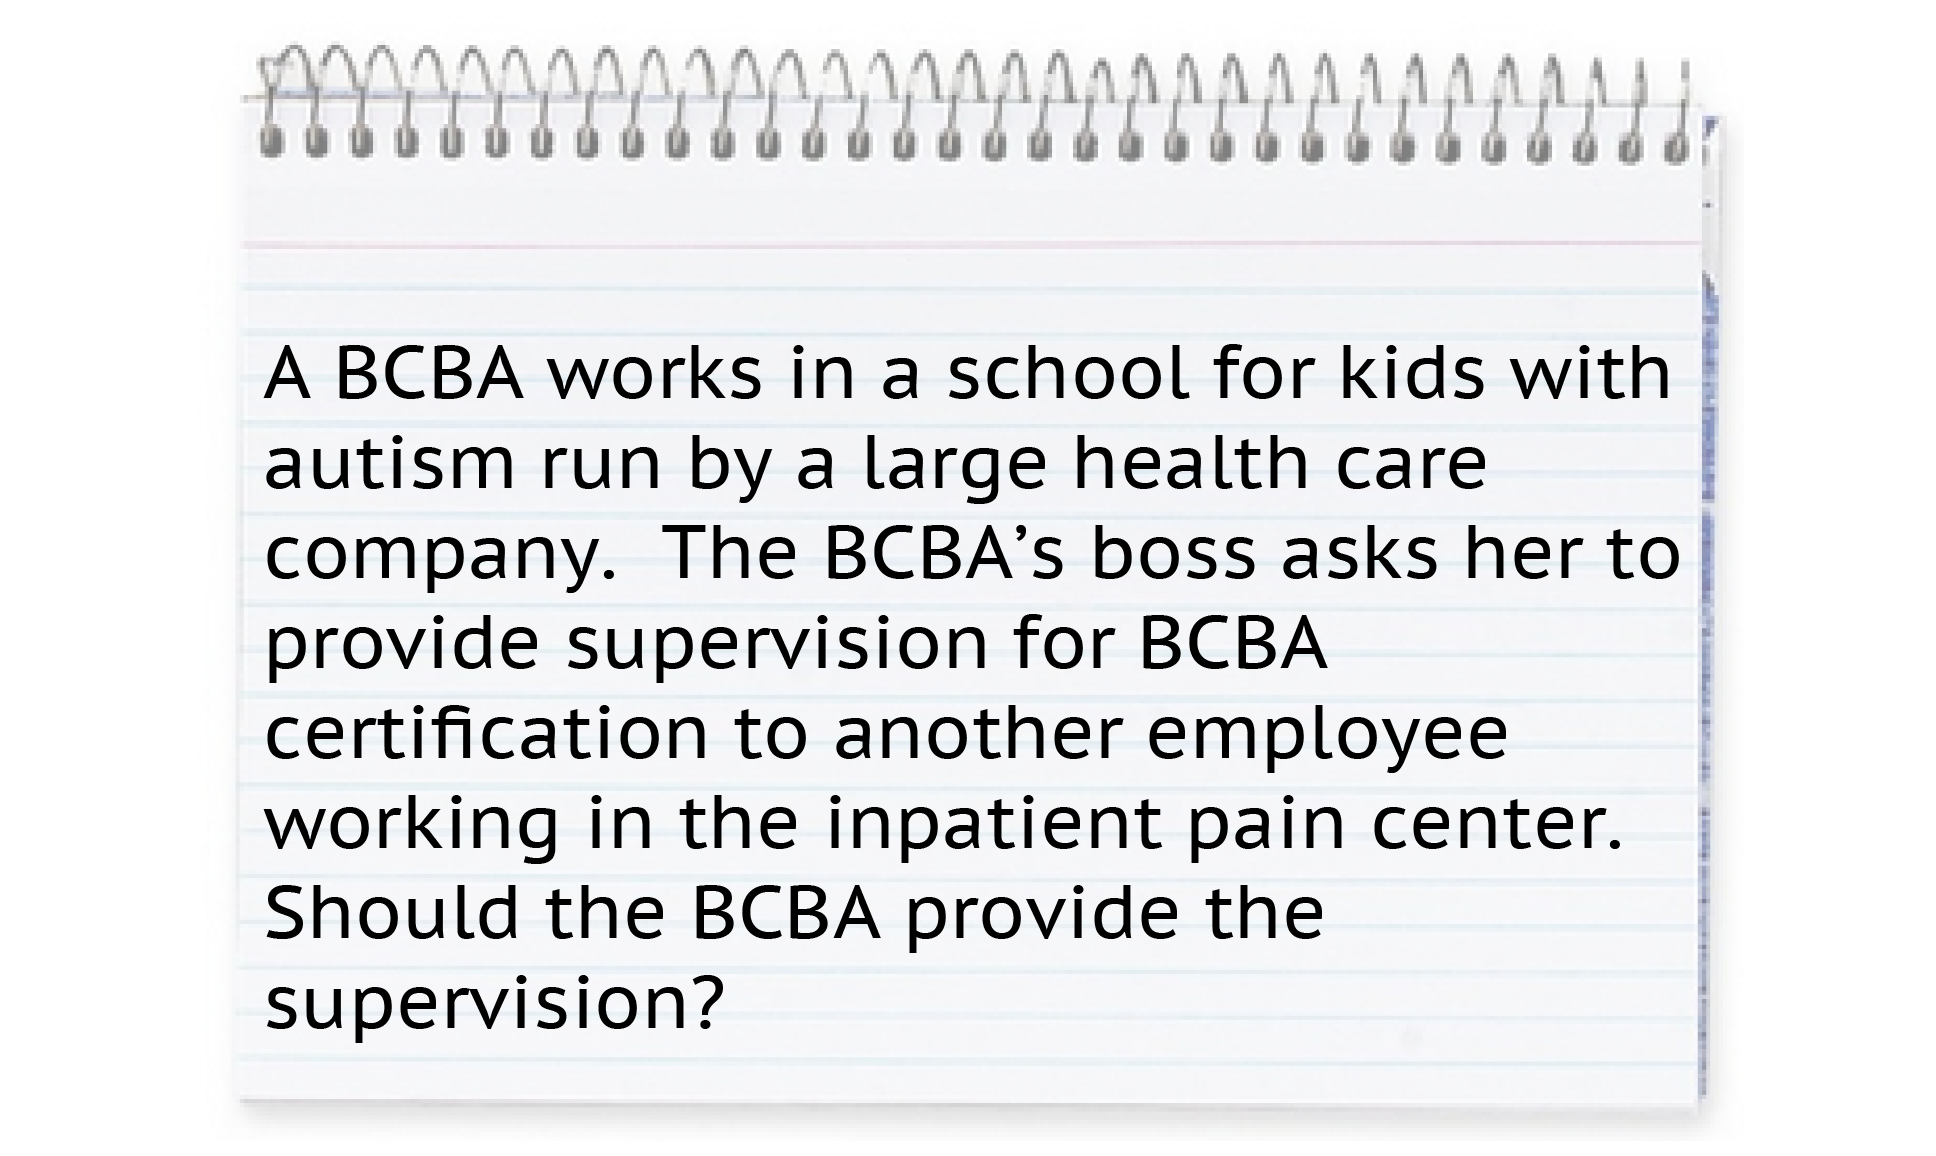 A bcba works in a school for kids with autism run by a large a bcba works in a school for kids with autism run by a large health care xflitez Images